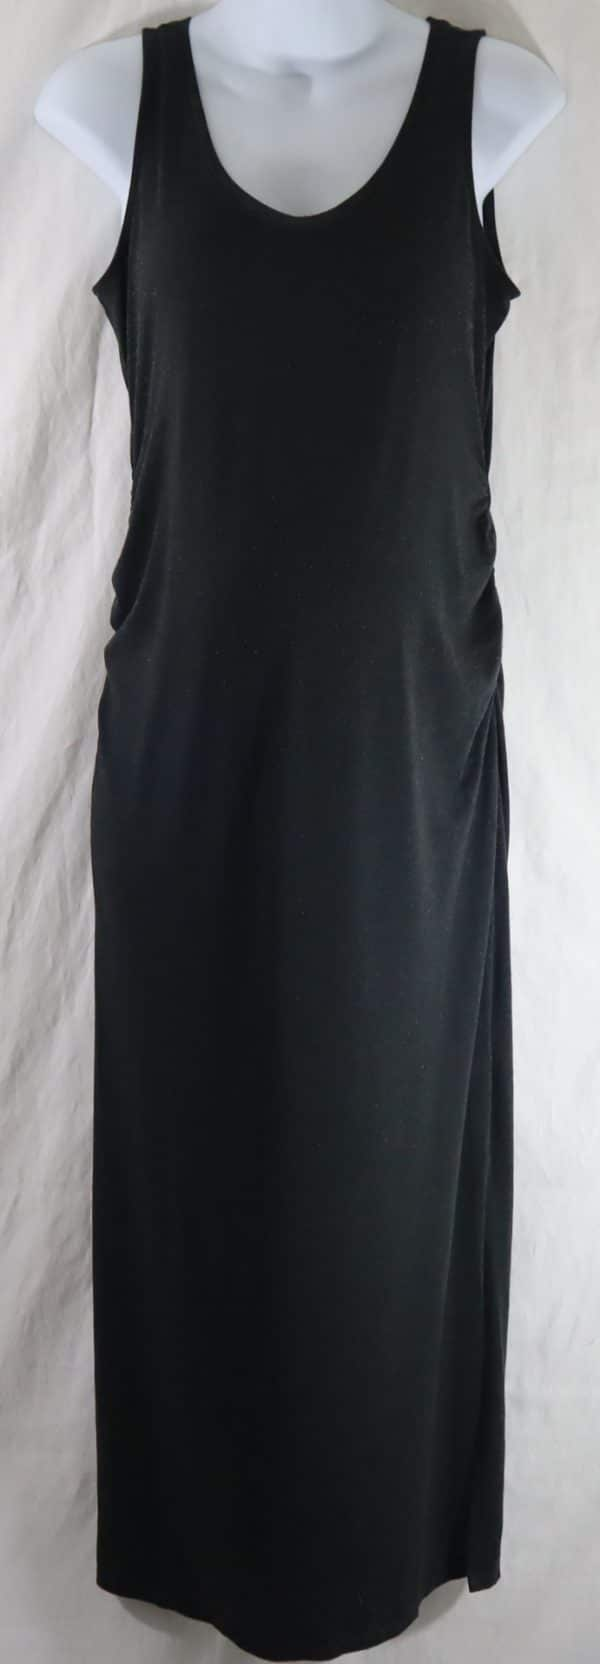 Old navy maternity dress, used maternity clothes, best maternity clothes